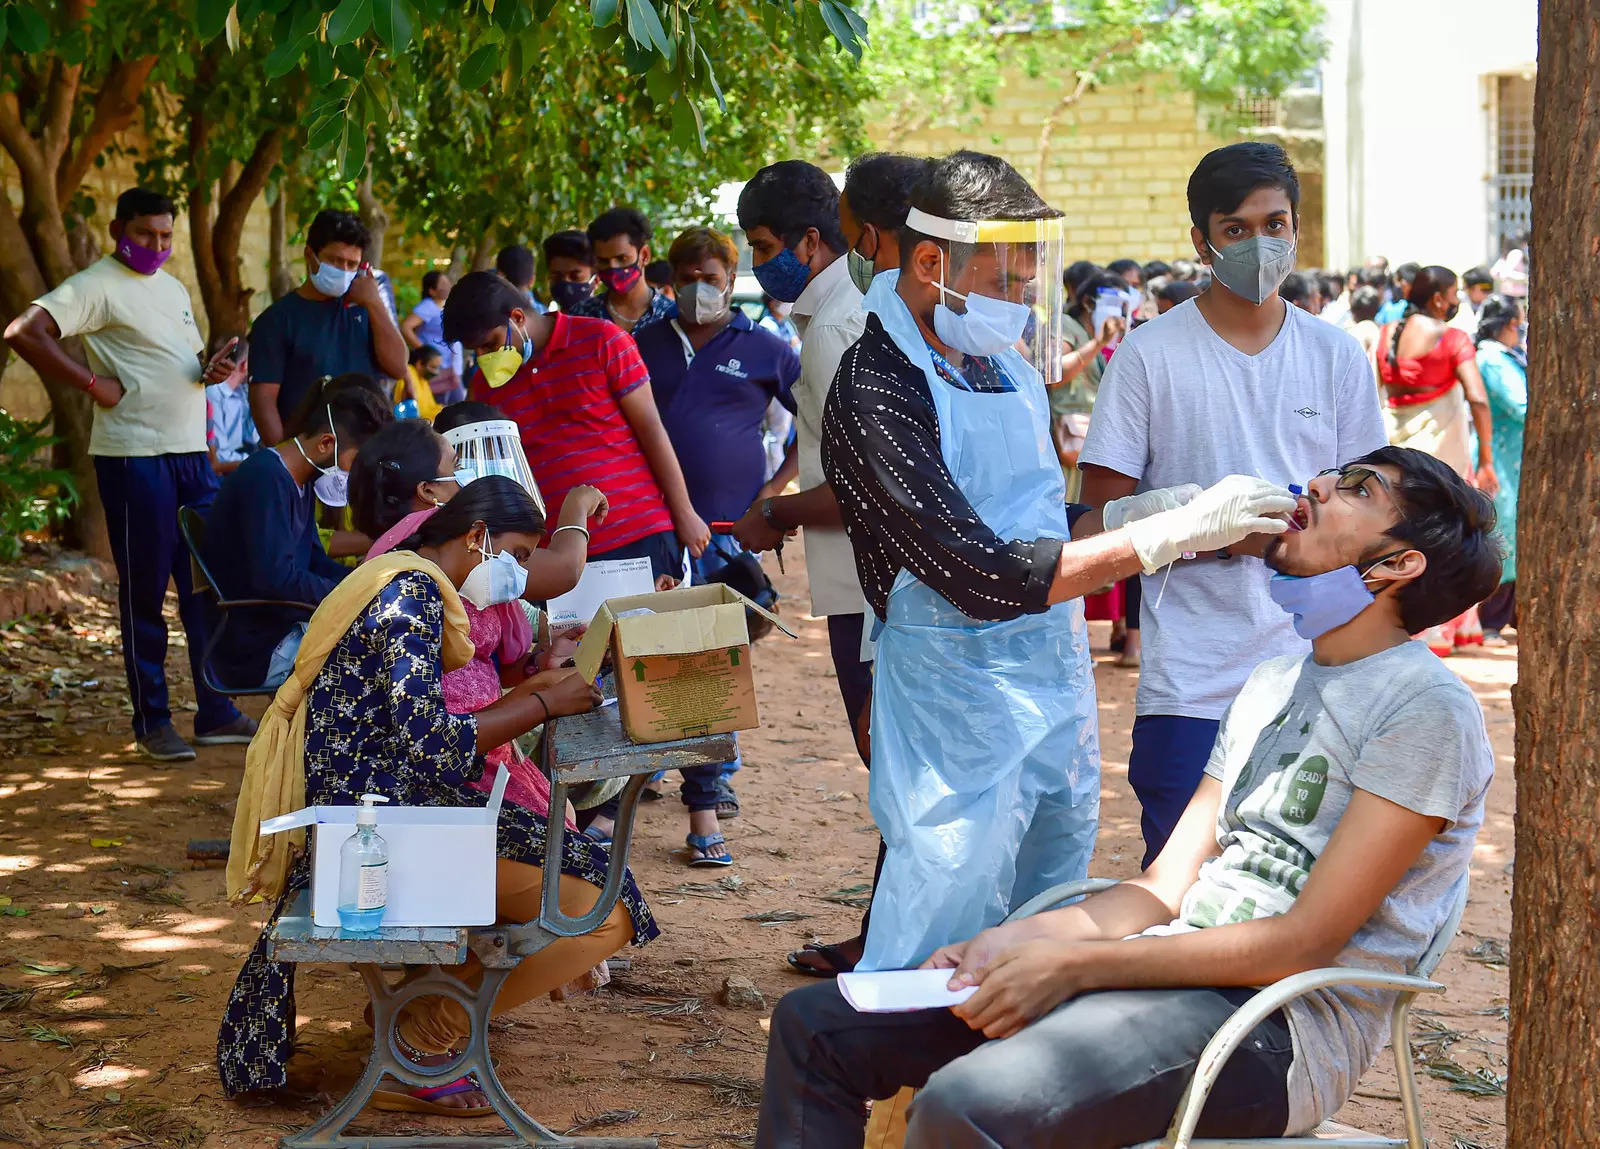 India records 1 lakh fresh Covid cases in the last 24 hours